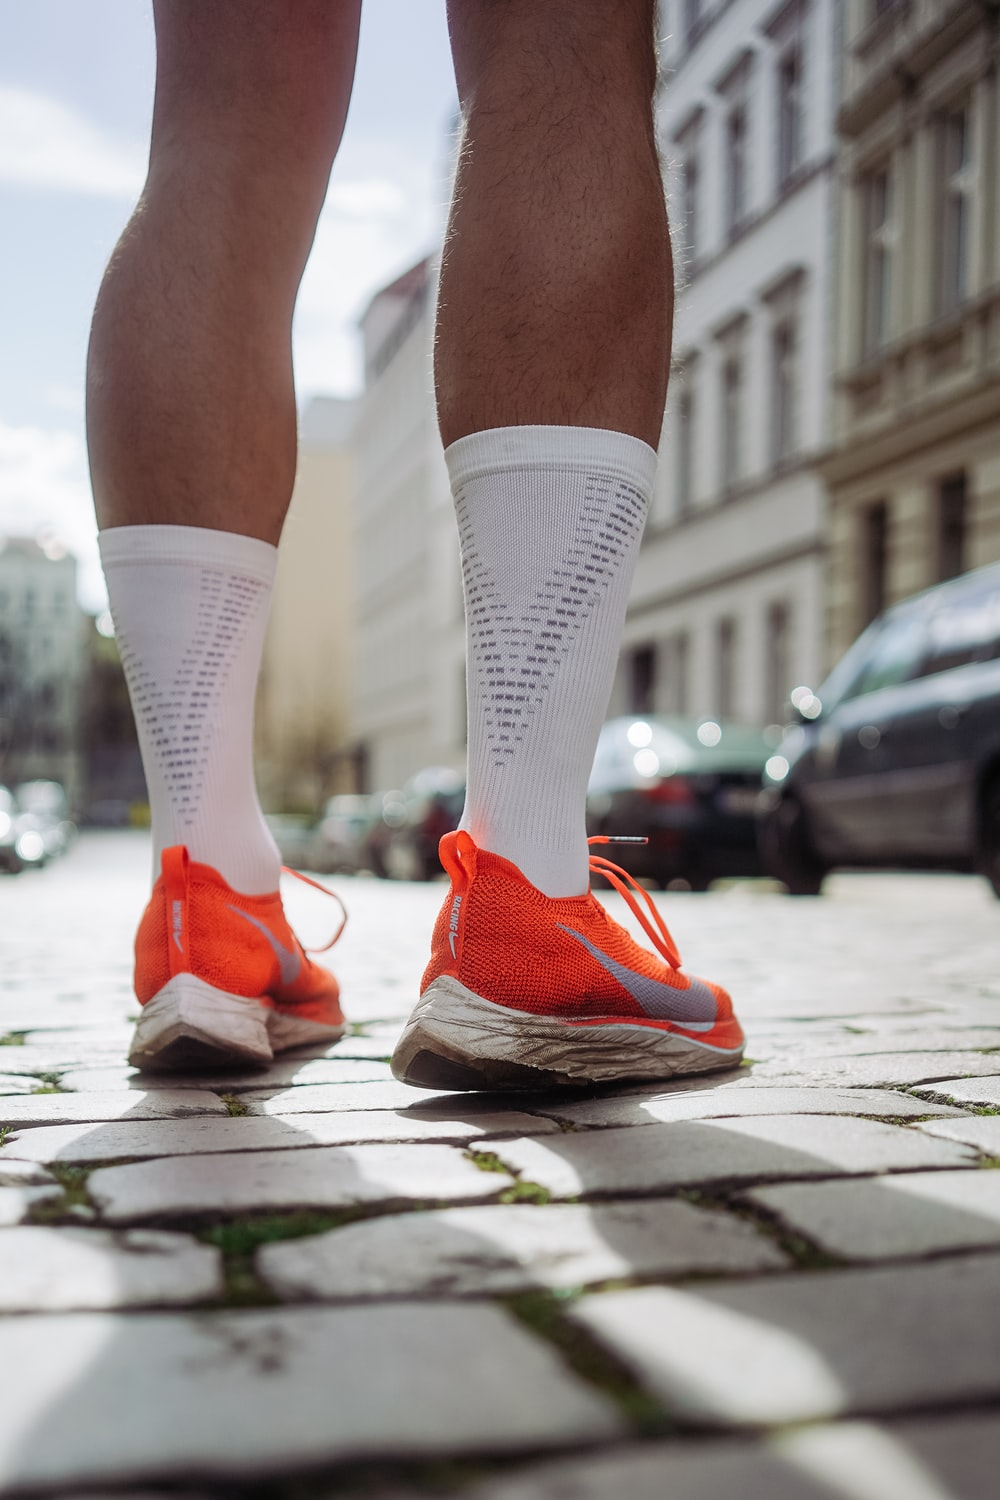 person wearing orange Nike running shoes standing on pavement